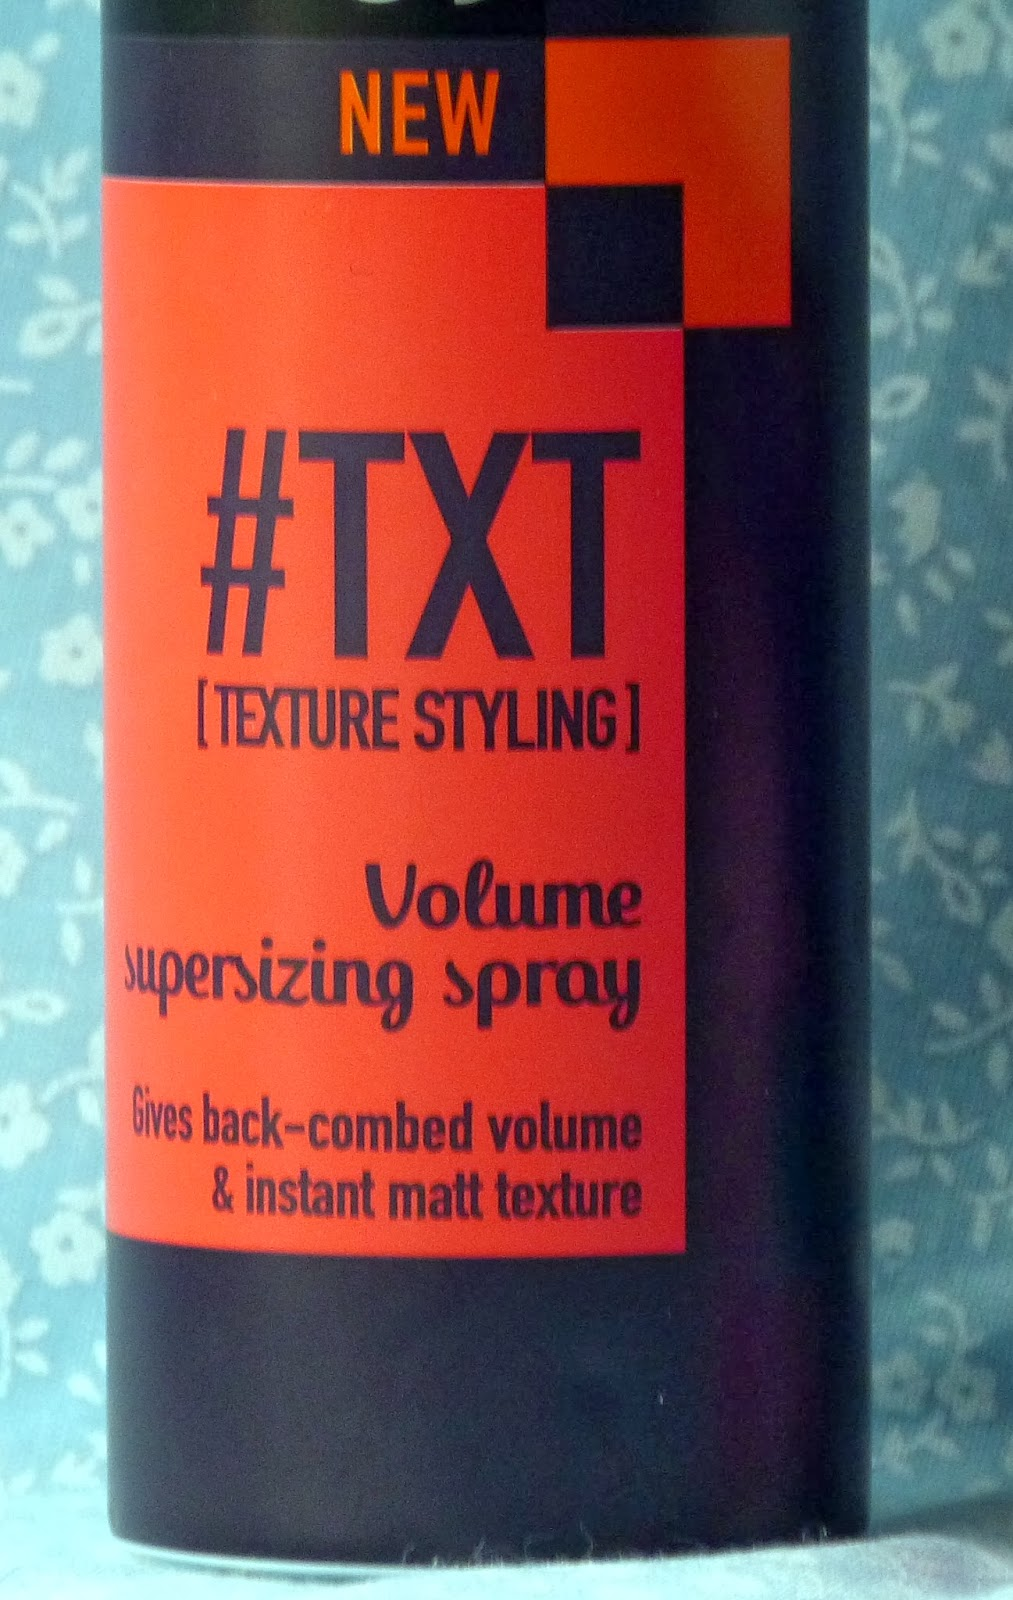 L'Oreal Paris #txt Volume Supersizing Spray